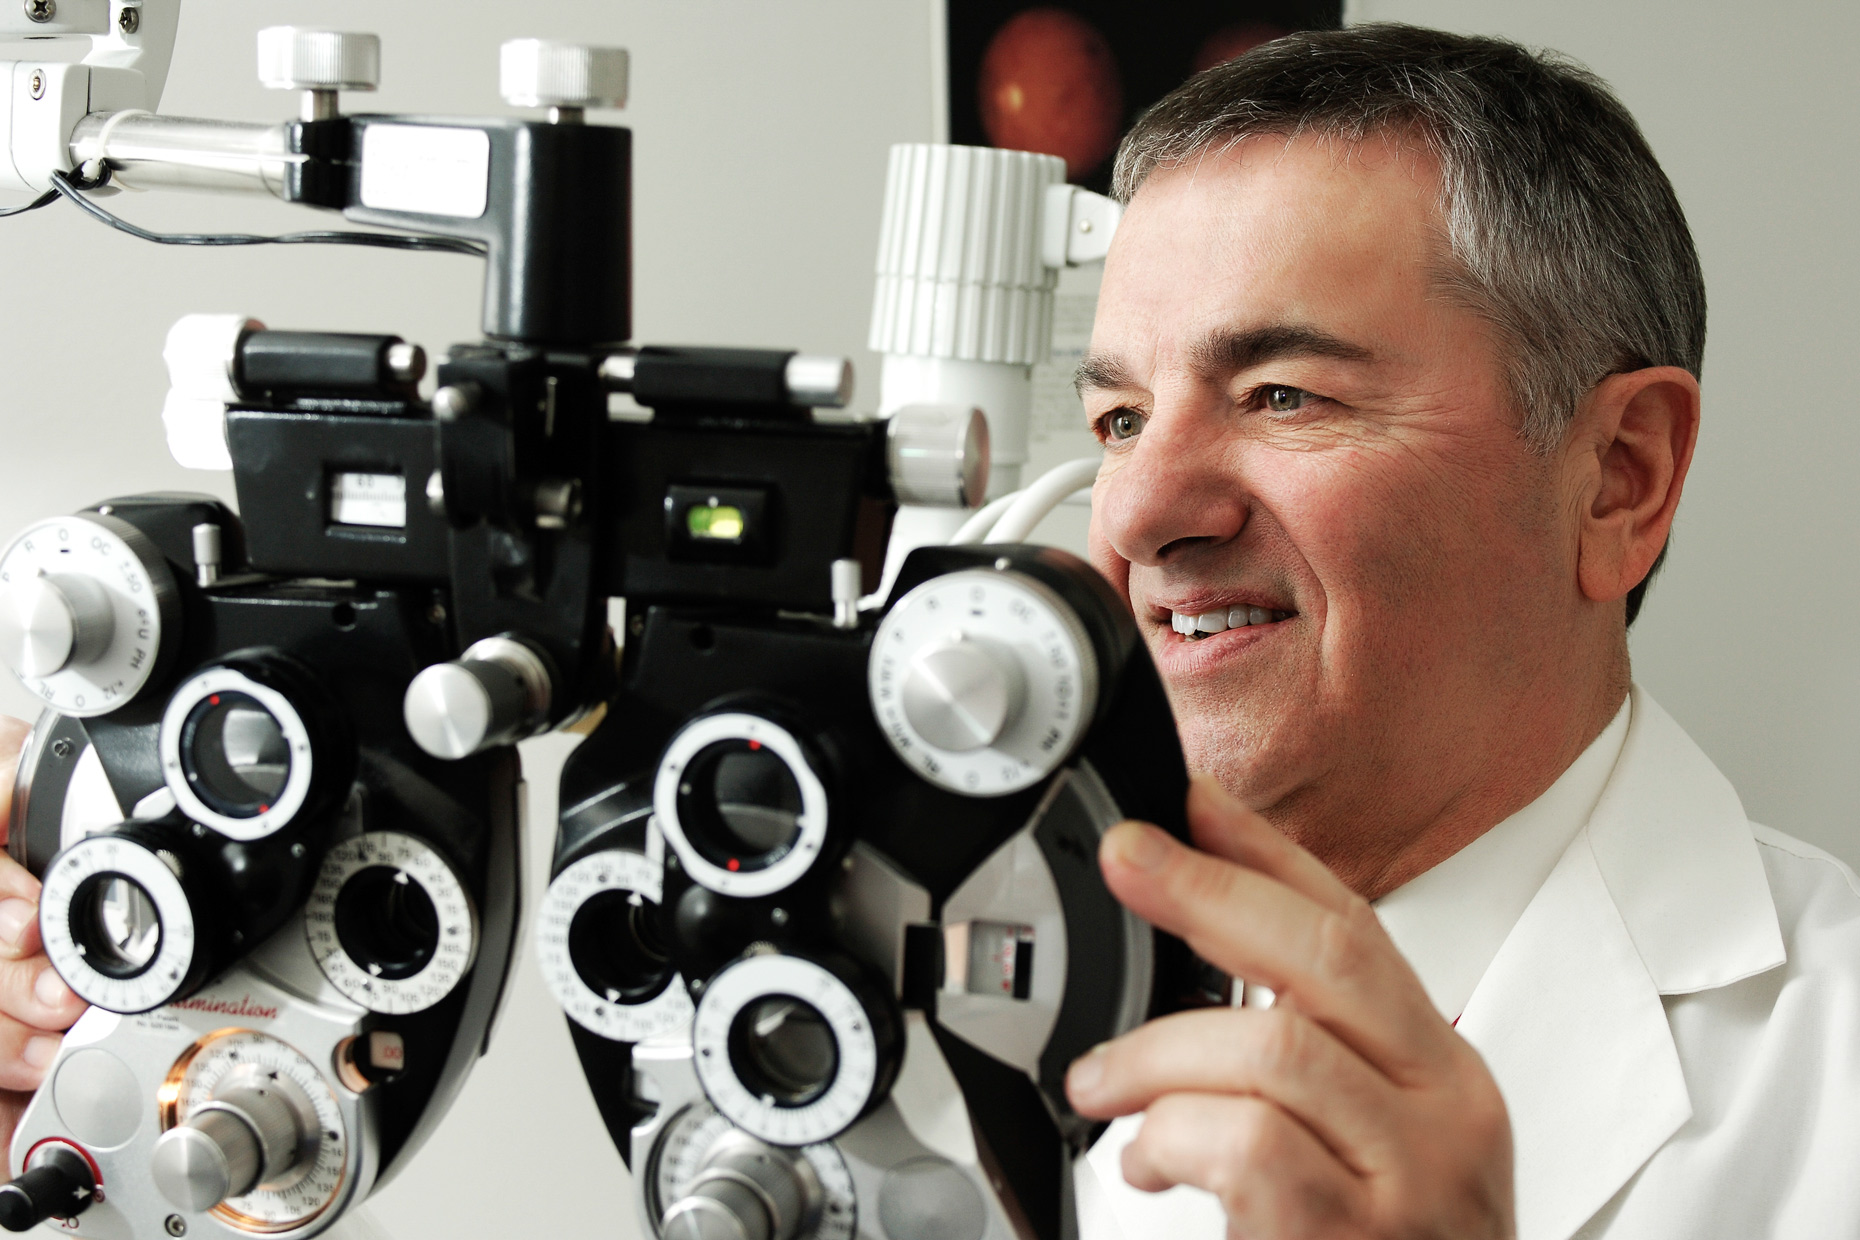 Optometrist - Healthcare photography by Dallas photographer Kevin Brown